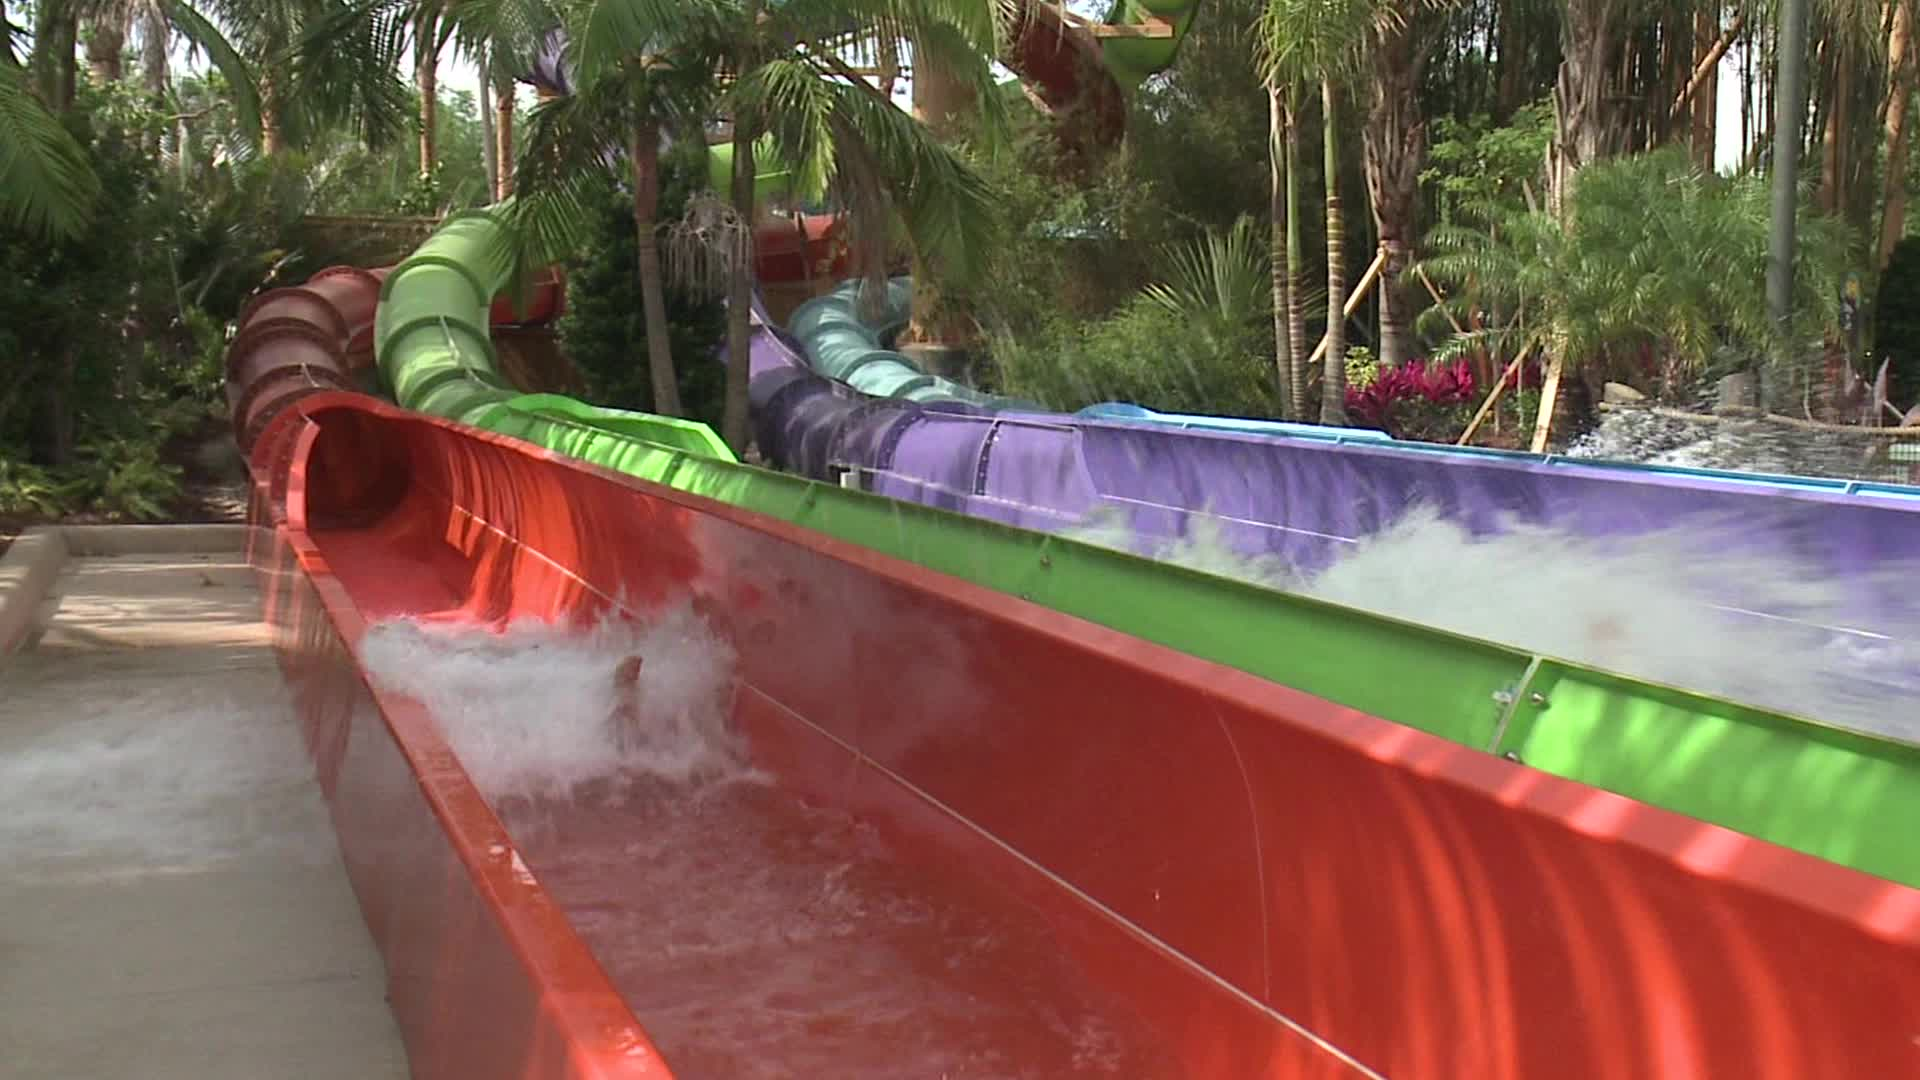 Brave the watery free fall on the all-new drop slide, Ihu's Breakaway Falls(TM) - the tallest, steepest and only multi-drop tower slide of its kind in Orlando. Face your fear and each other in a ring of tubes that encircle an almost 80 degree plunge into the abyss. Ihu's Breakaway Falls - now towering over Aquatica, SeaWorld's Waterpark(TM).